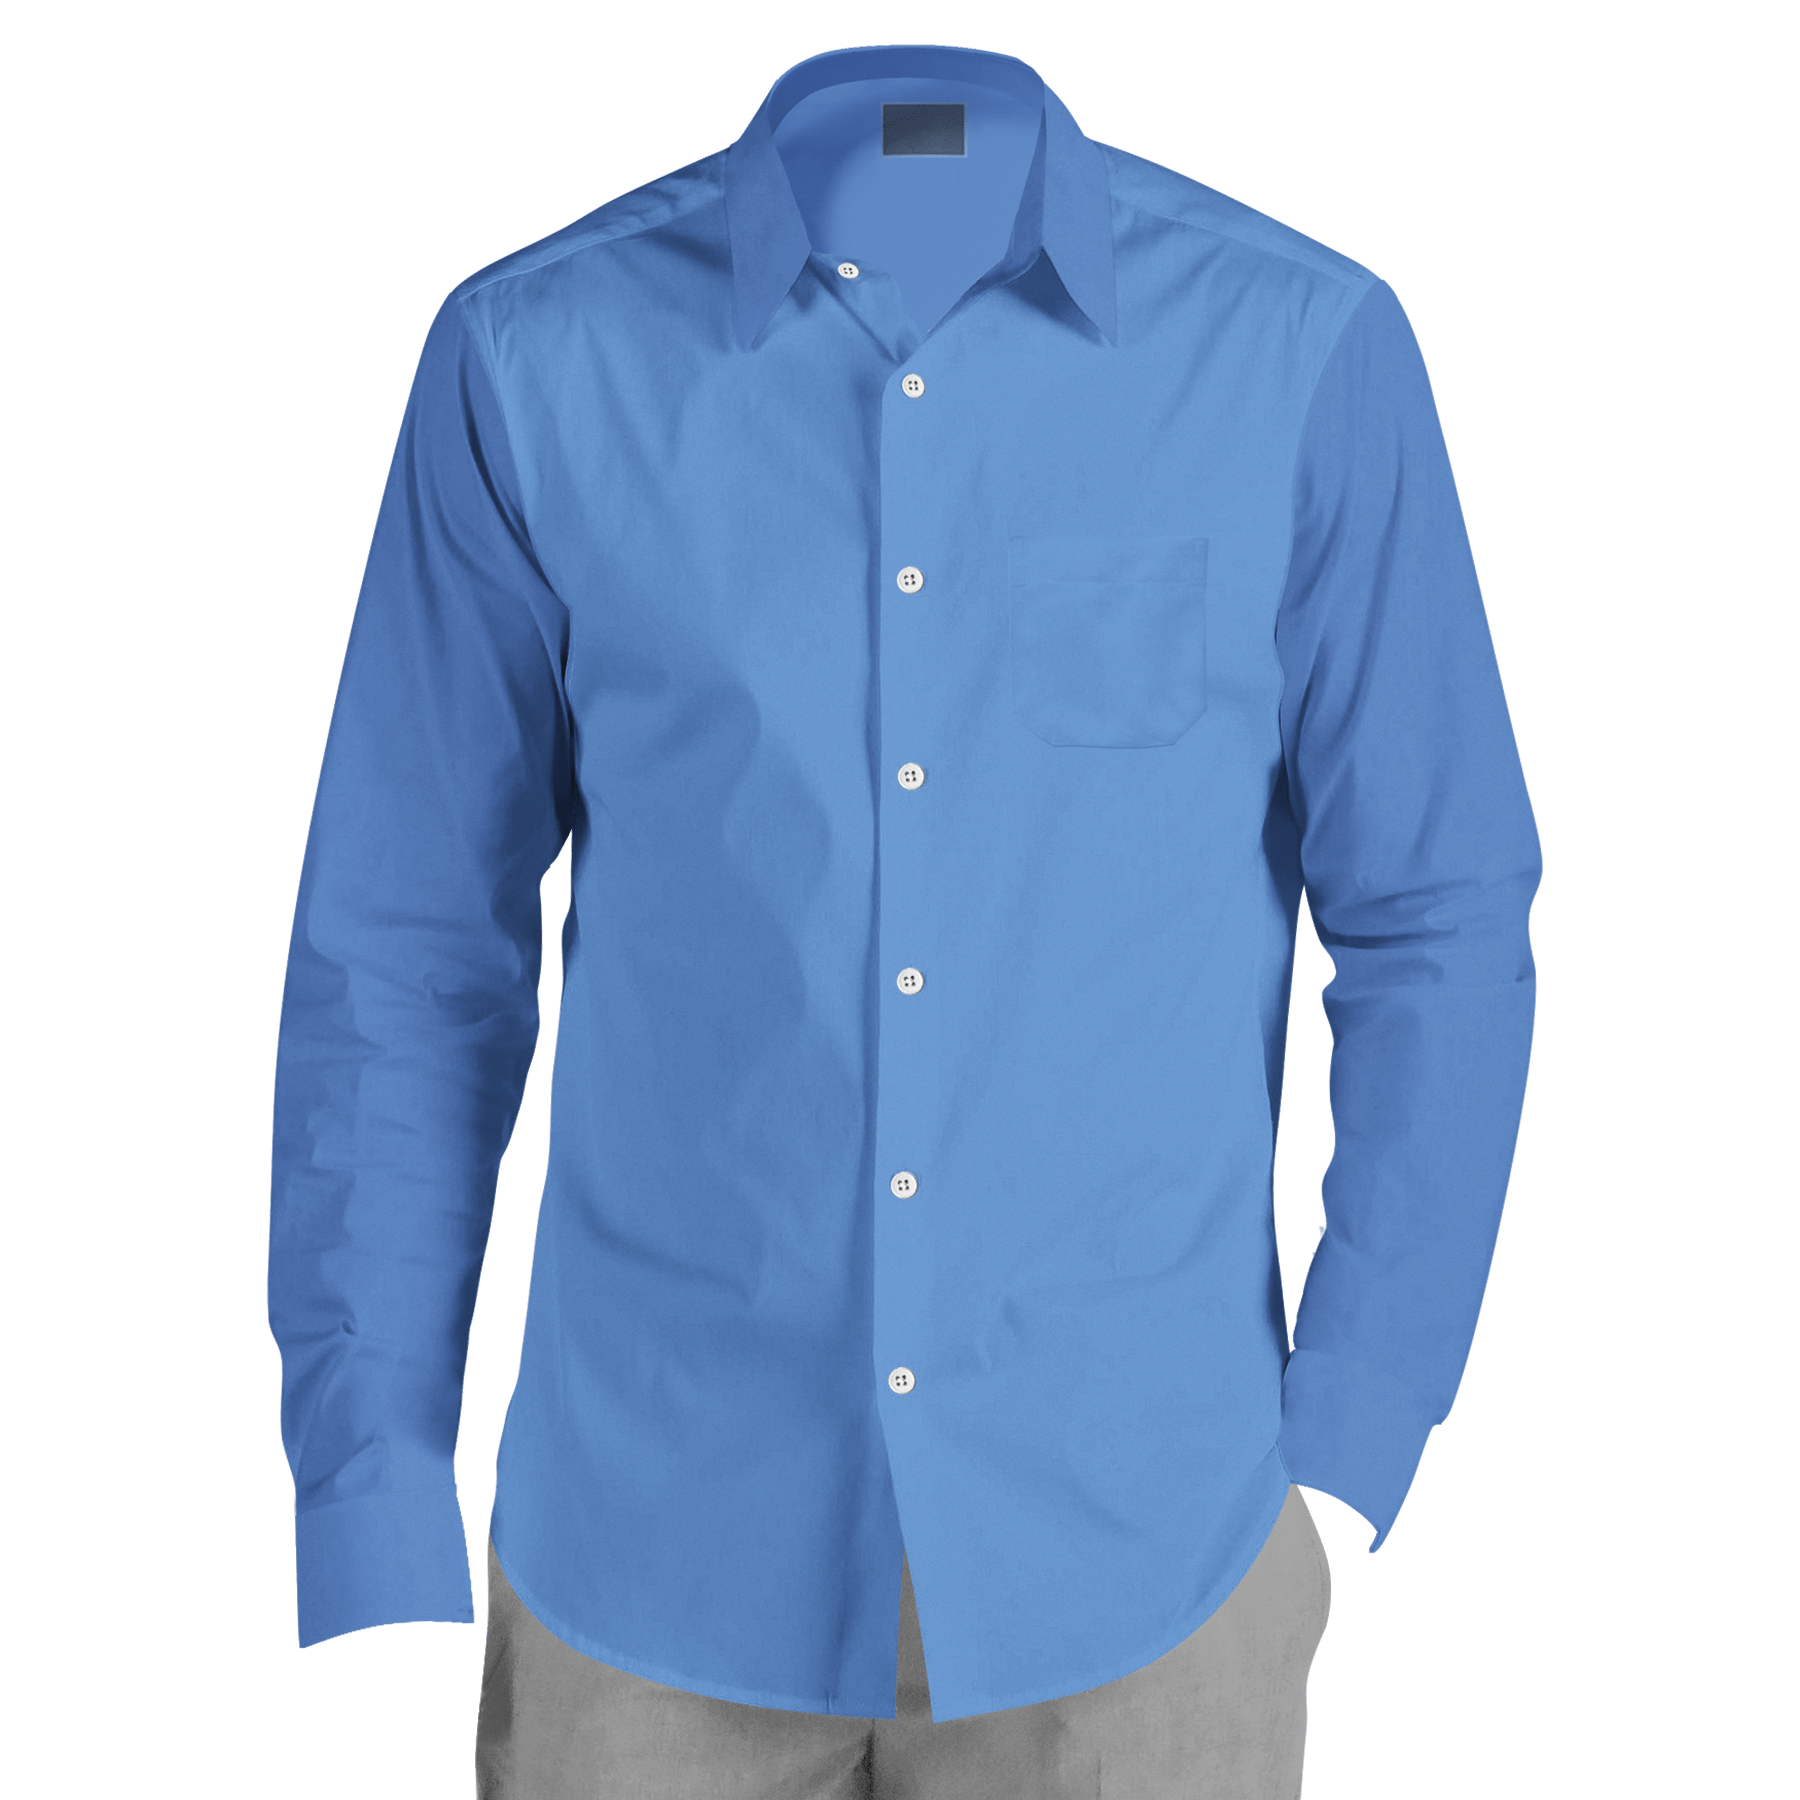 dress shirt with out logo - Corporate Apparel